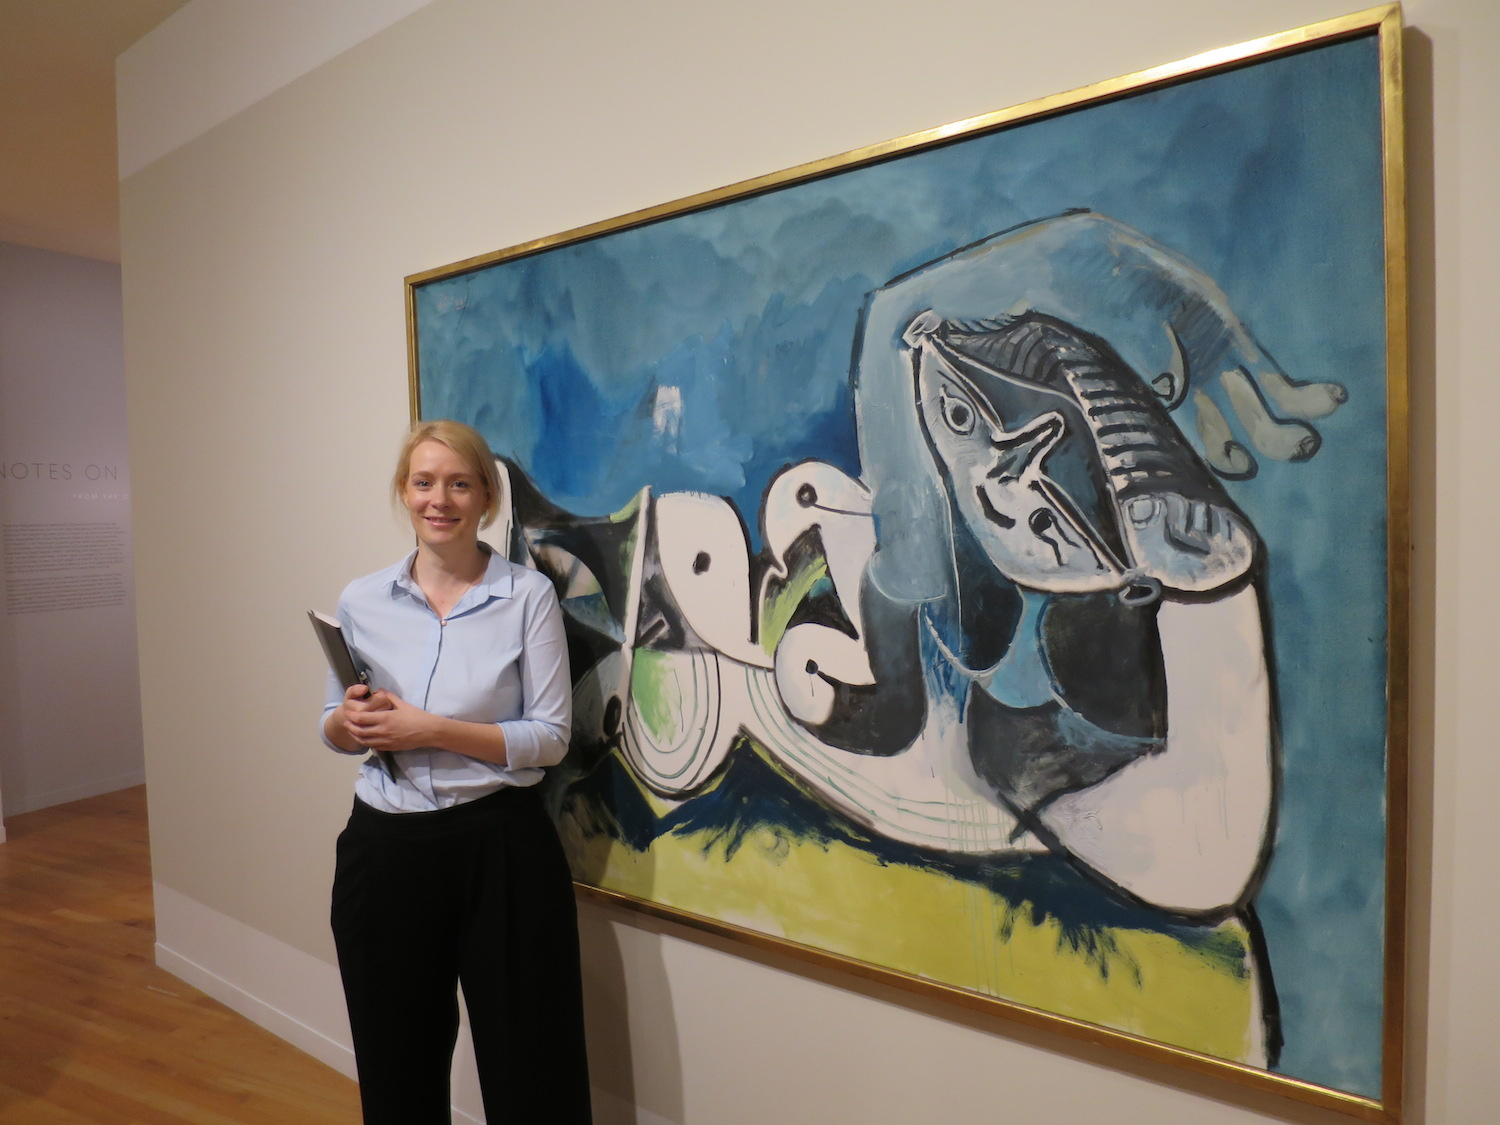 Picasso exhibition at Vancouver Art Gallery is Western Canada's largest